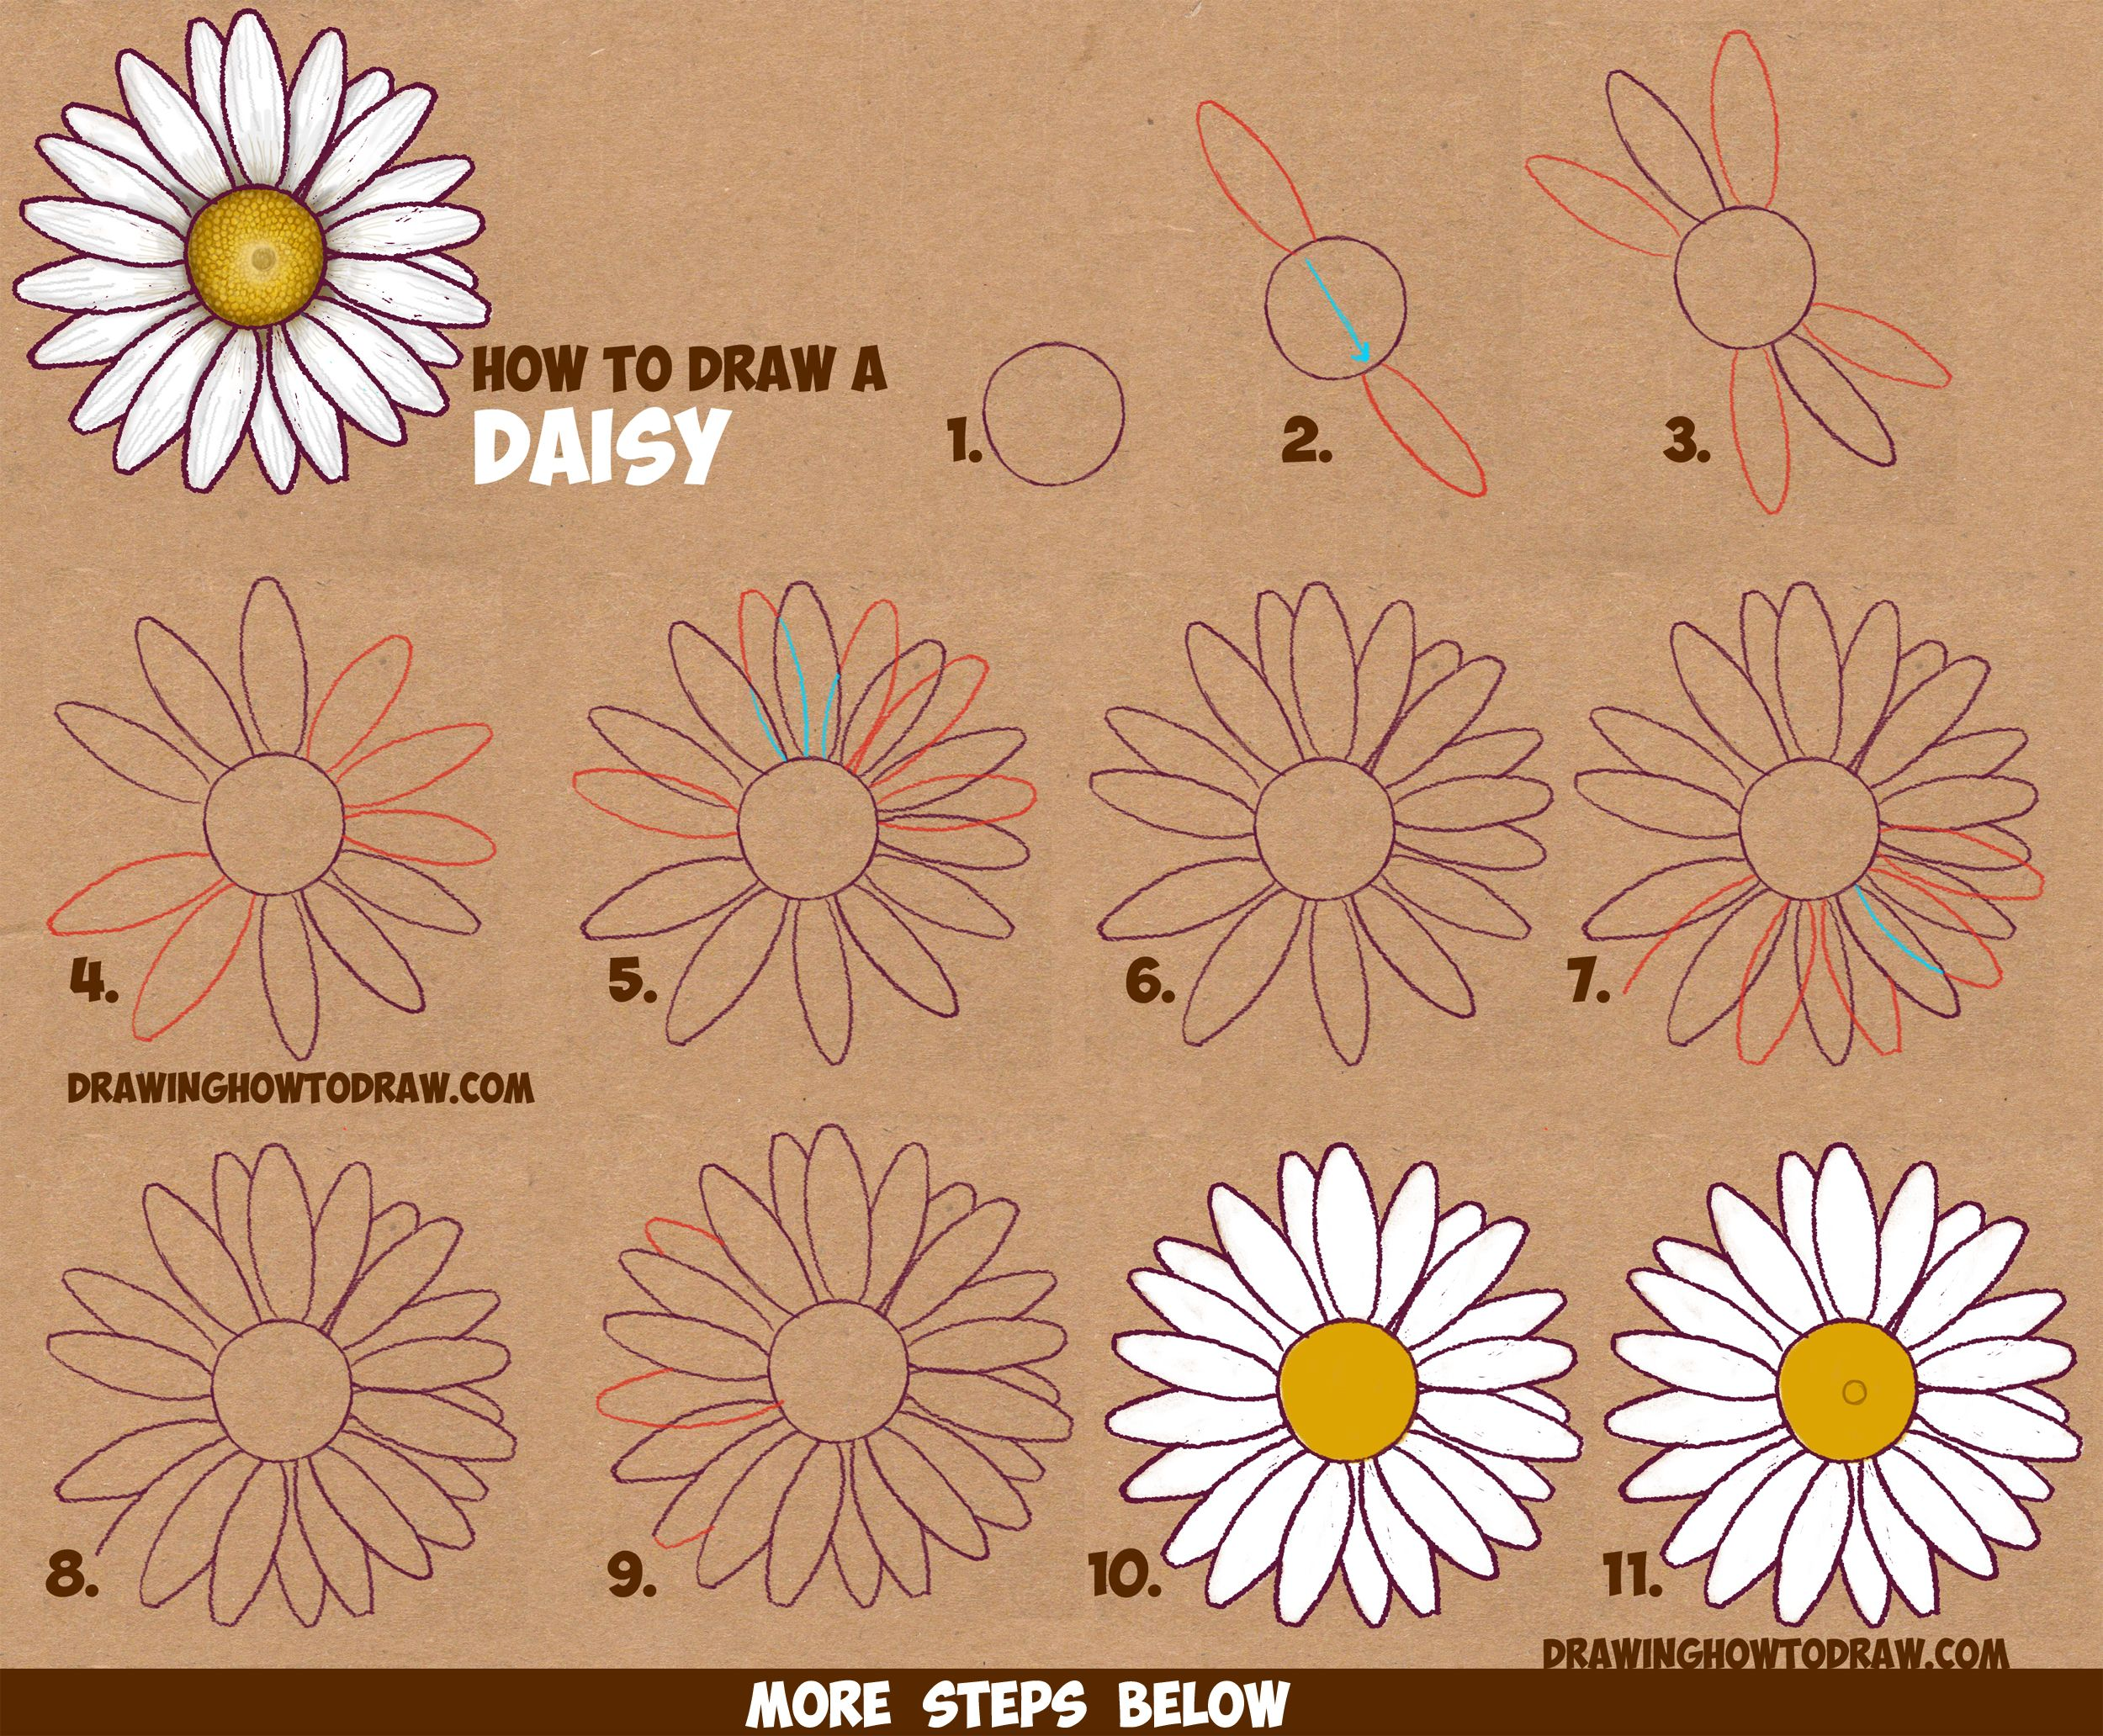 How To Draw A Daisy Flower Daisies In Easy Step By Step Drawing Instructions Tutorial For Beginners How To Draw Step By Step Drawing Tutorials Flower Drawing Tutorials Daisy Flower